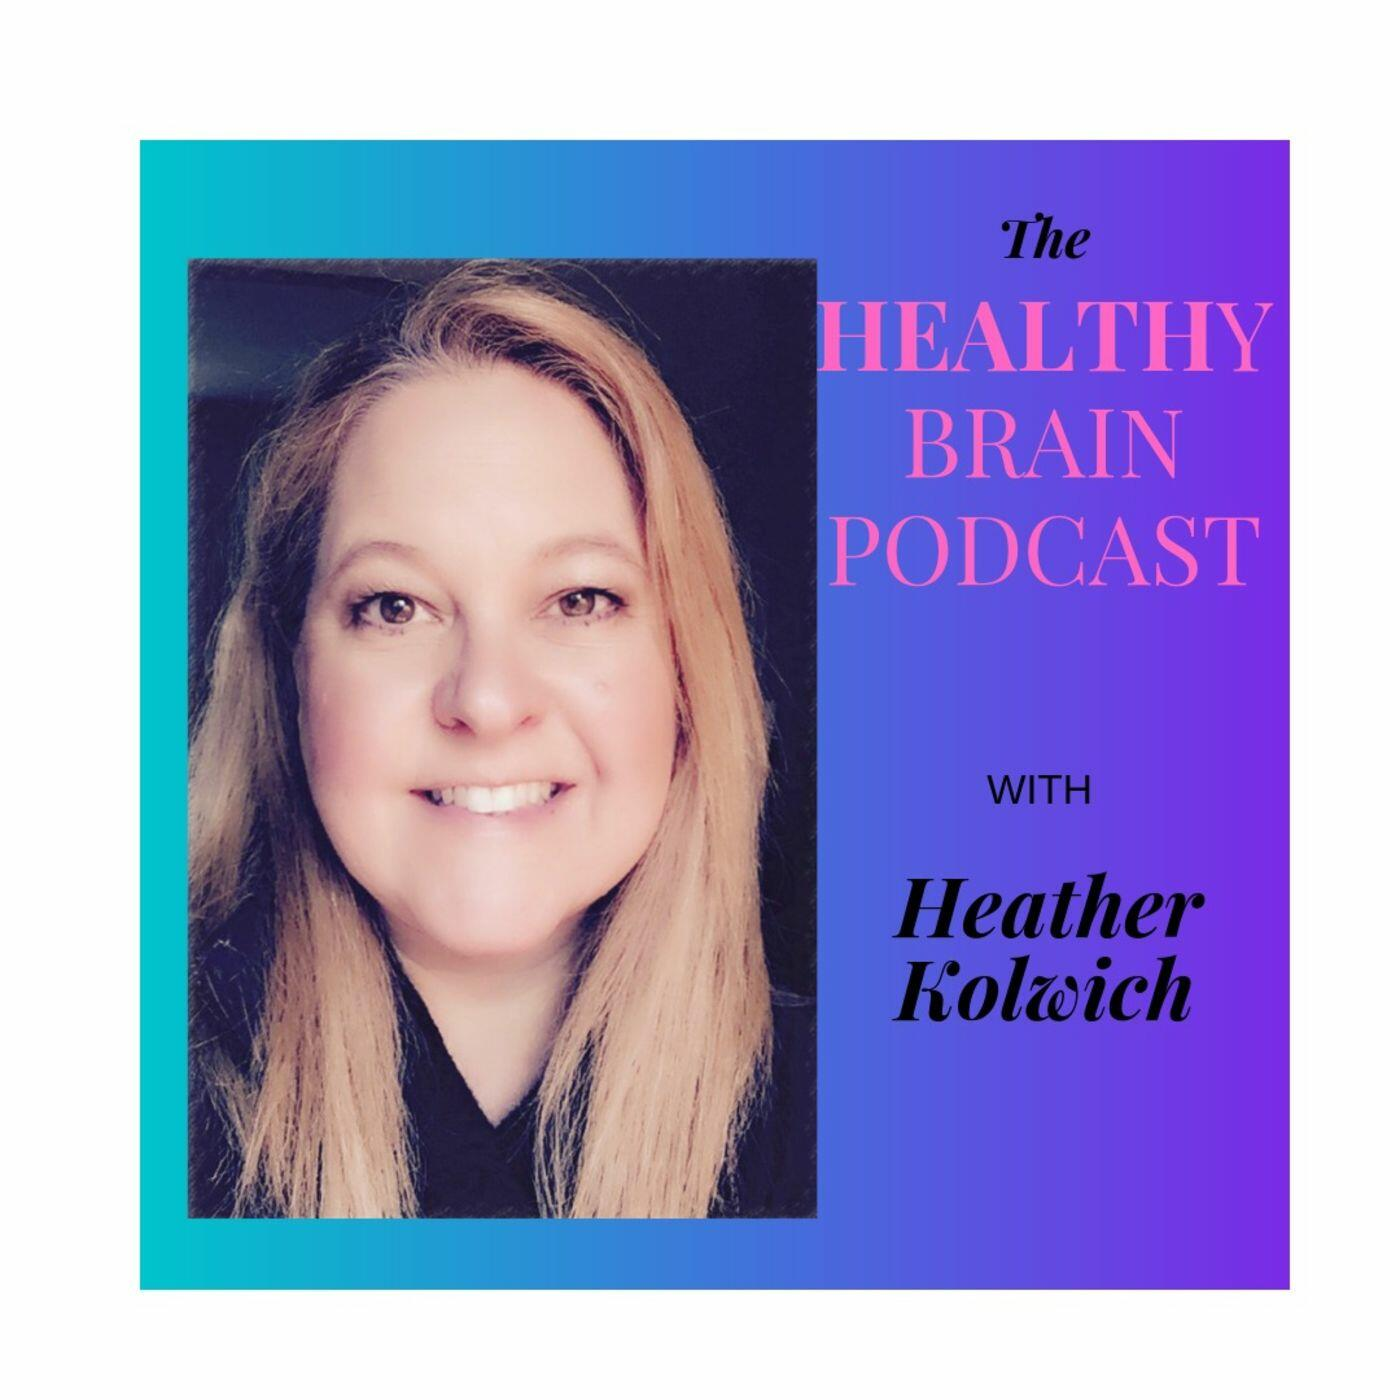 The Healthy Brain Podcast